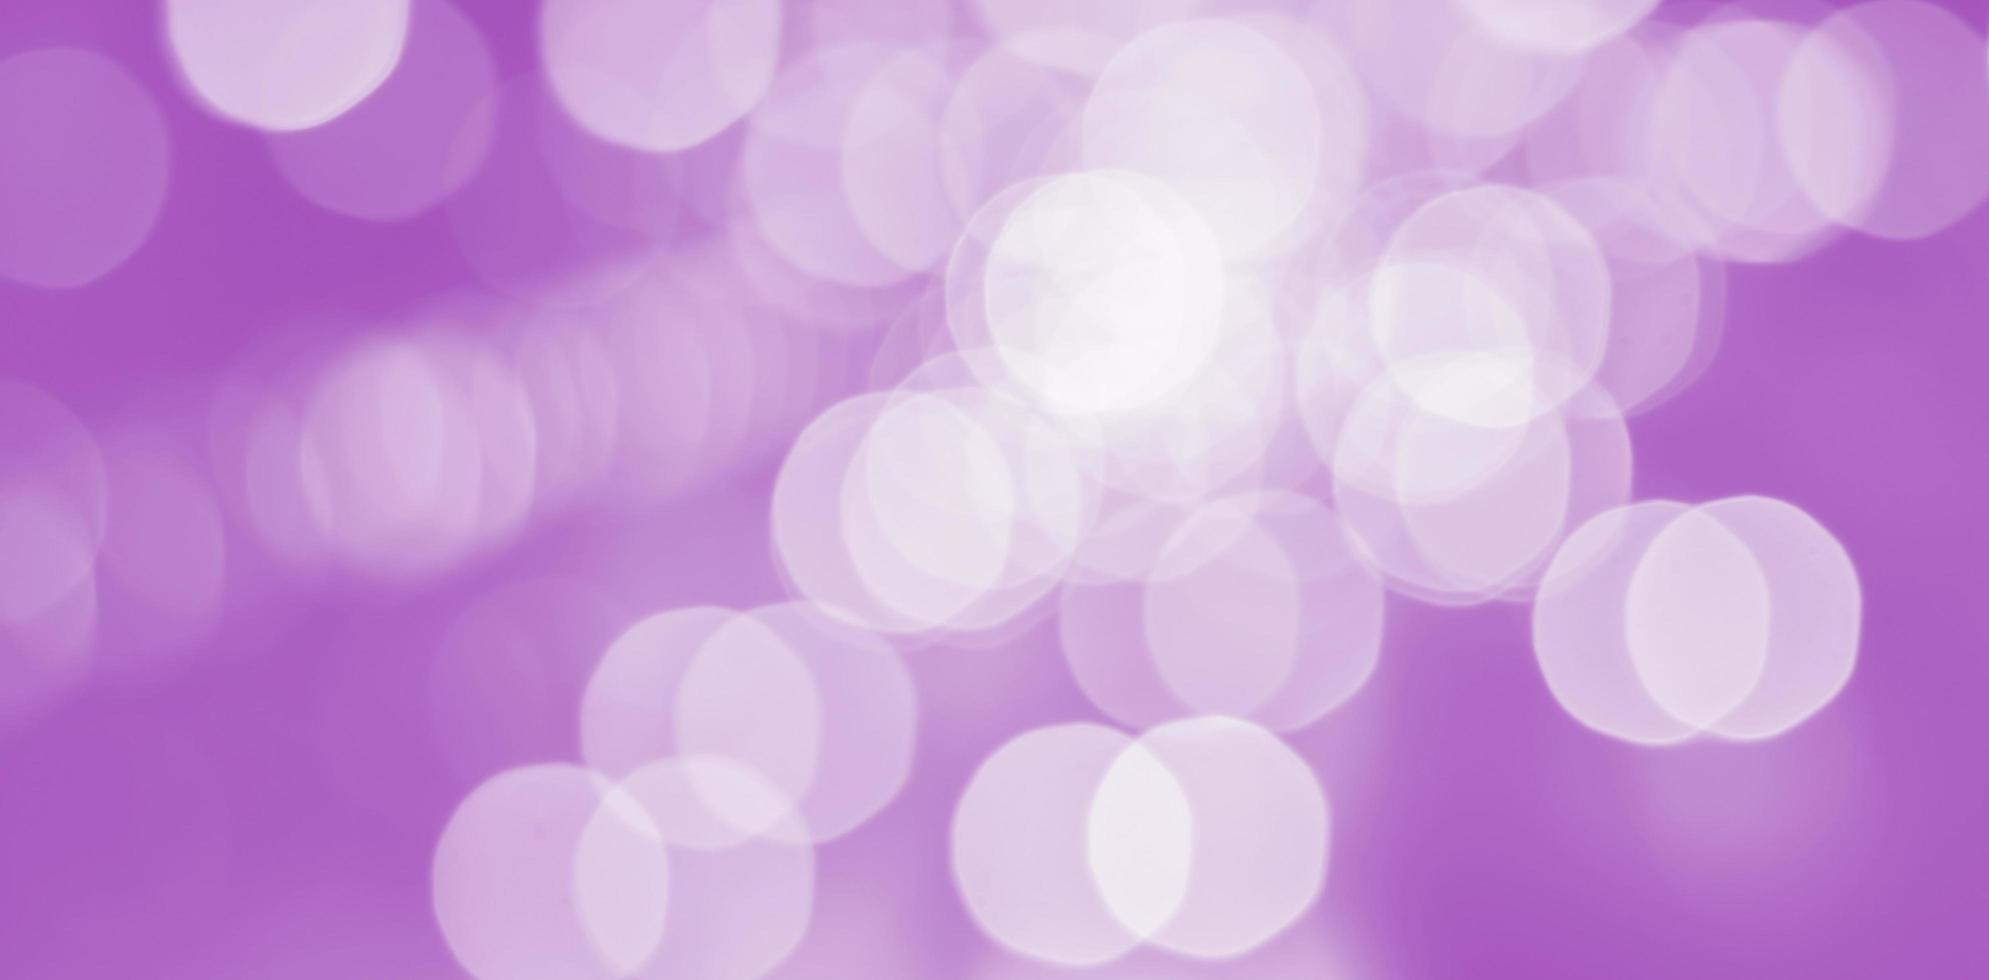 Abstract bokeh on pink background photo